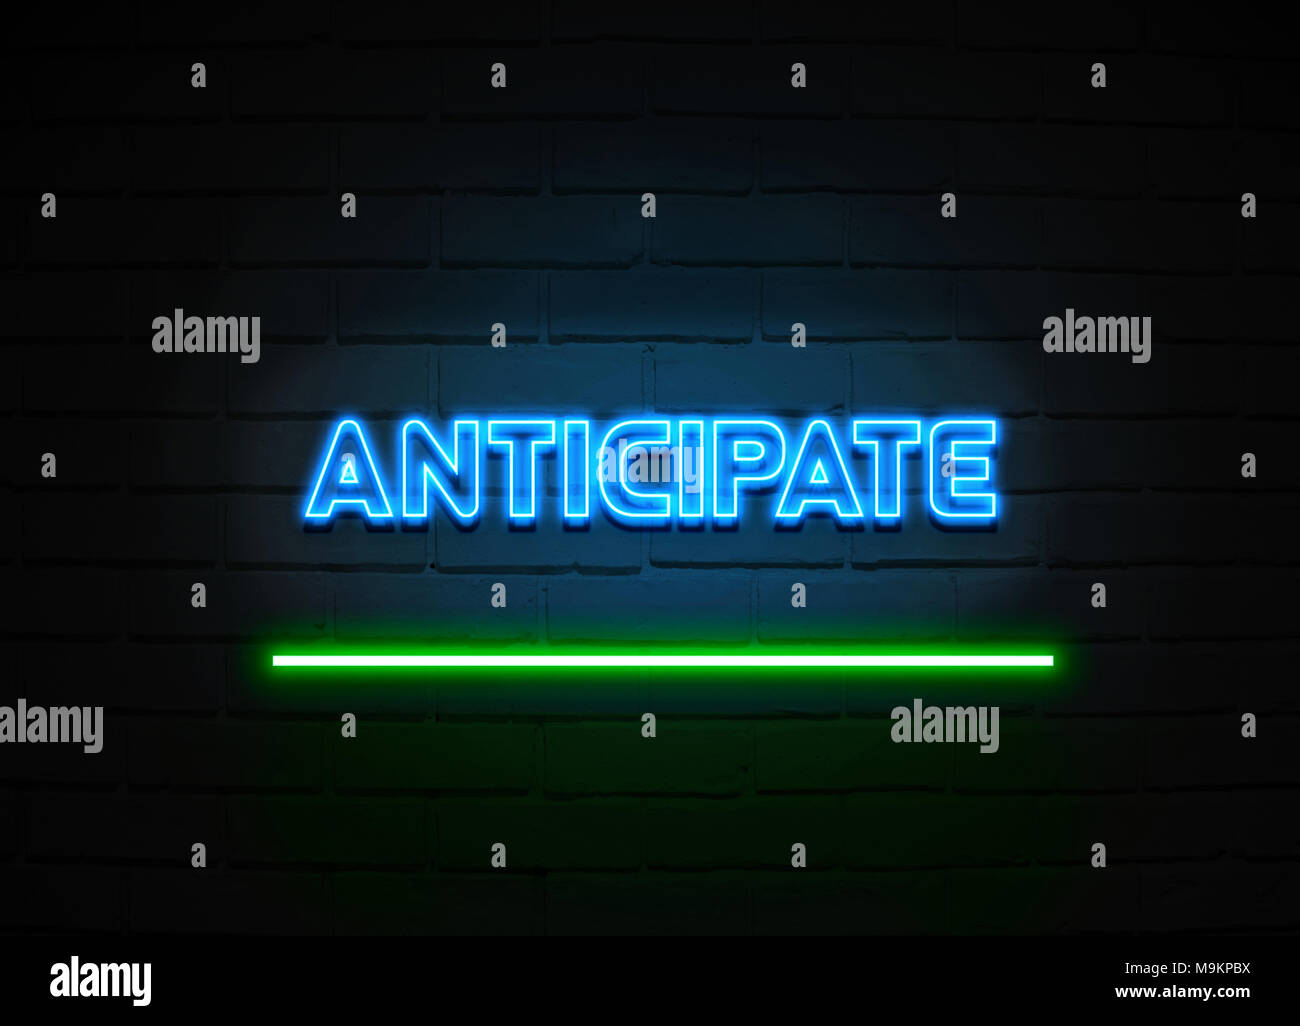 Anticipate neon sign - Glowing Neon Sign on brickwall wall - 3D rendered royalty free stock illustration. - Stock Image